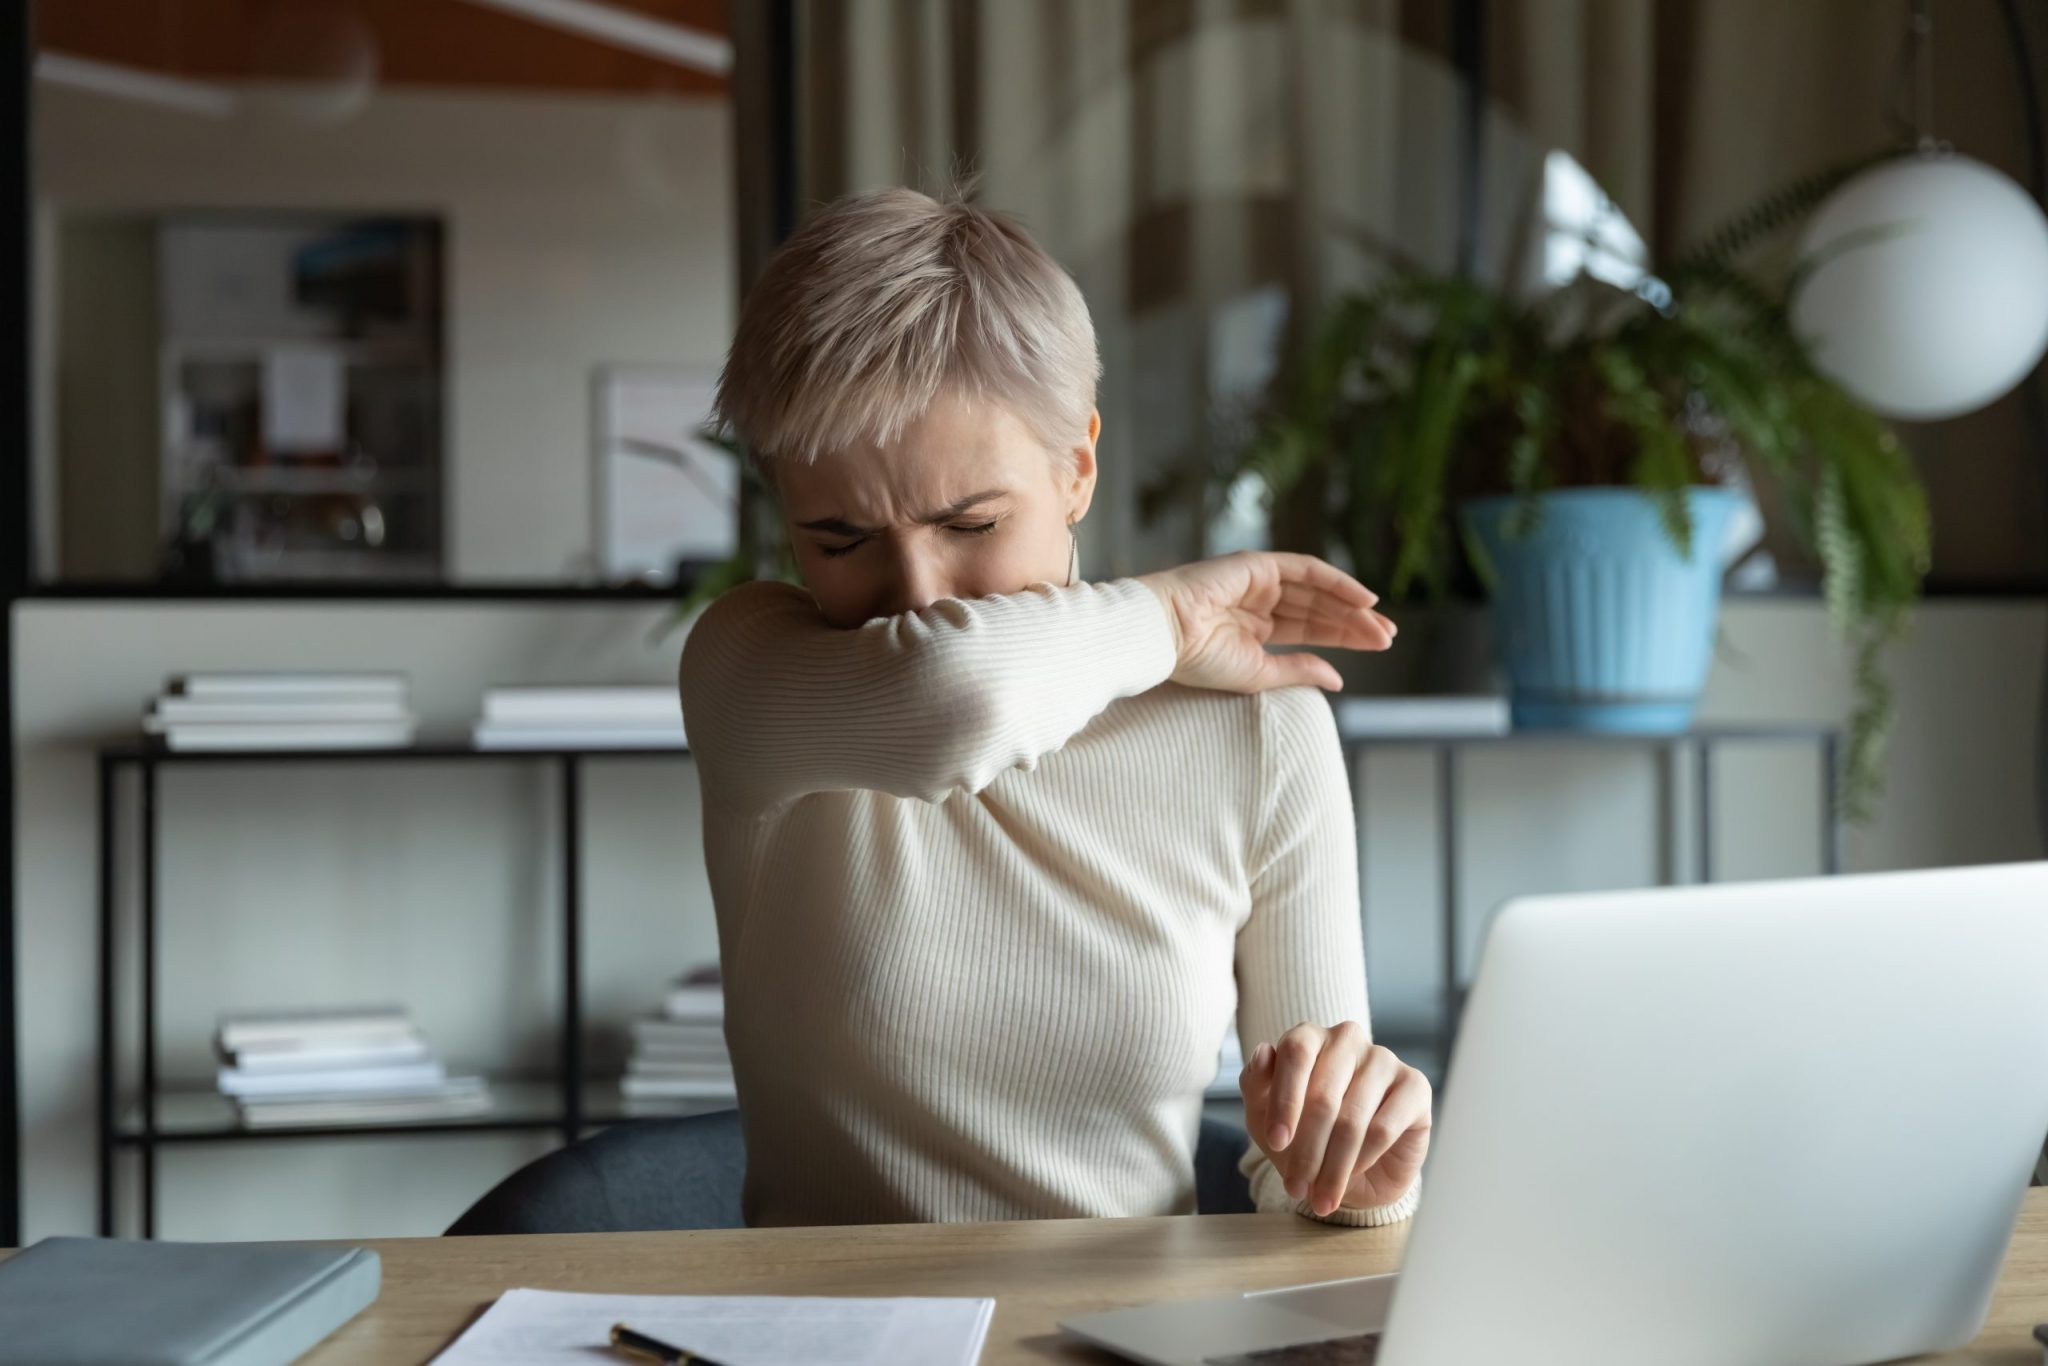 Front view young female manager with short haircut coughing or sneezing in elbow while working on laptop in office room.